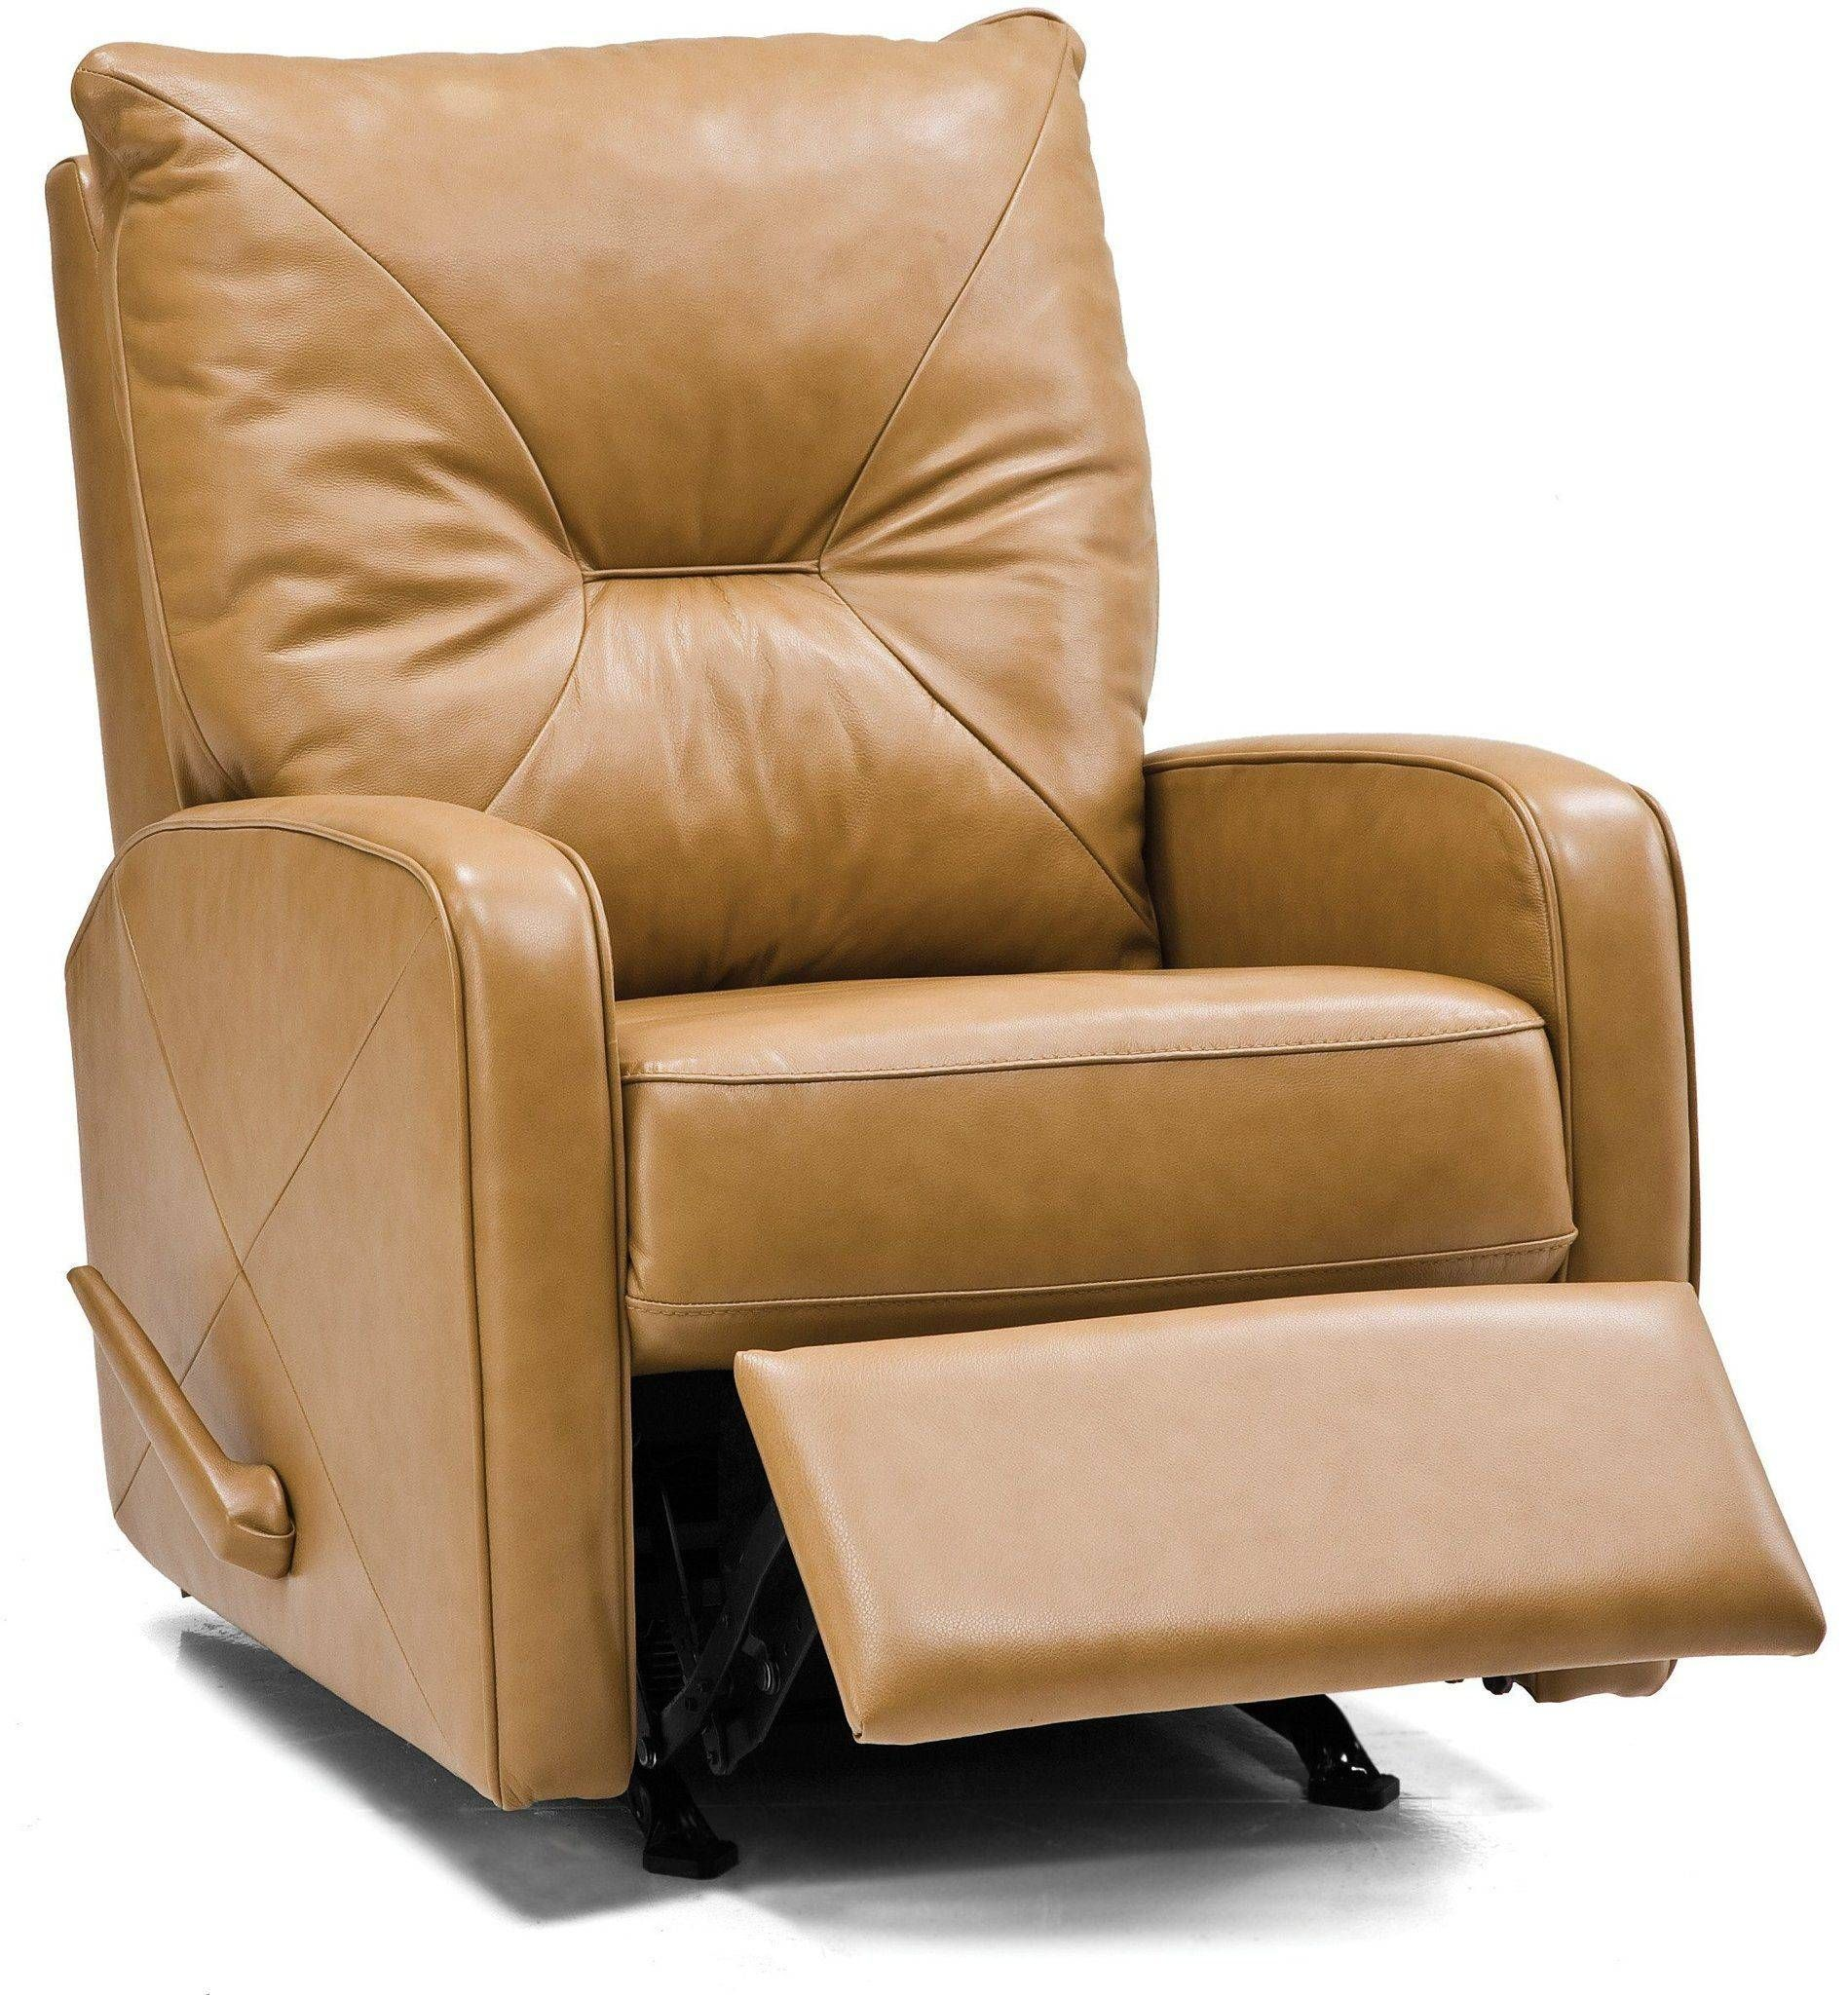 Recliner In 2020 Modern Recliner Chairs Small Recliner Chairs Scandinavian Recliner Chairs